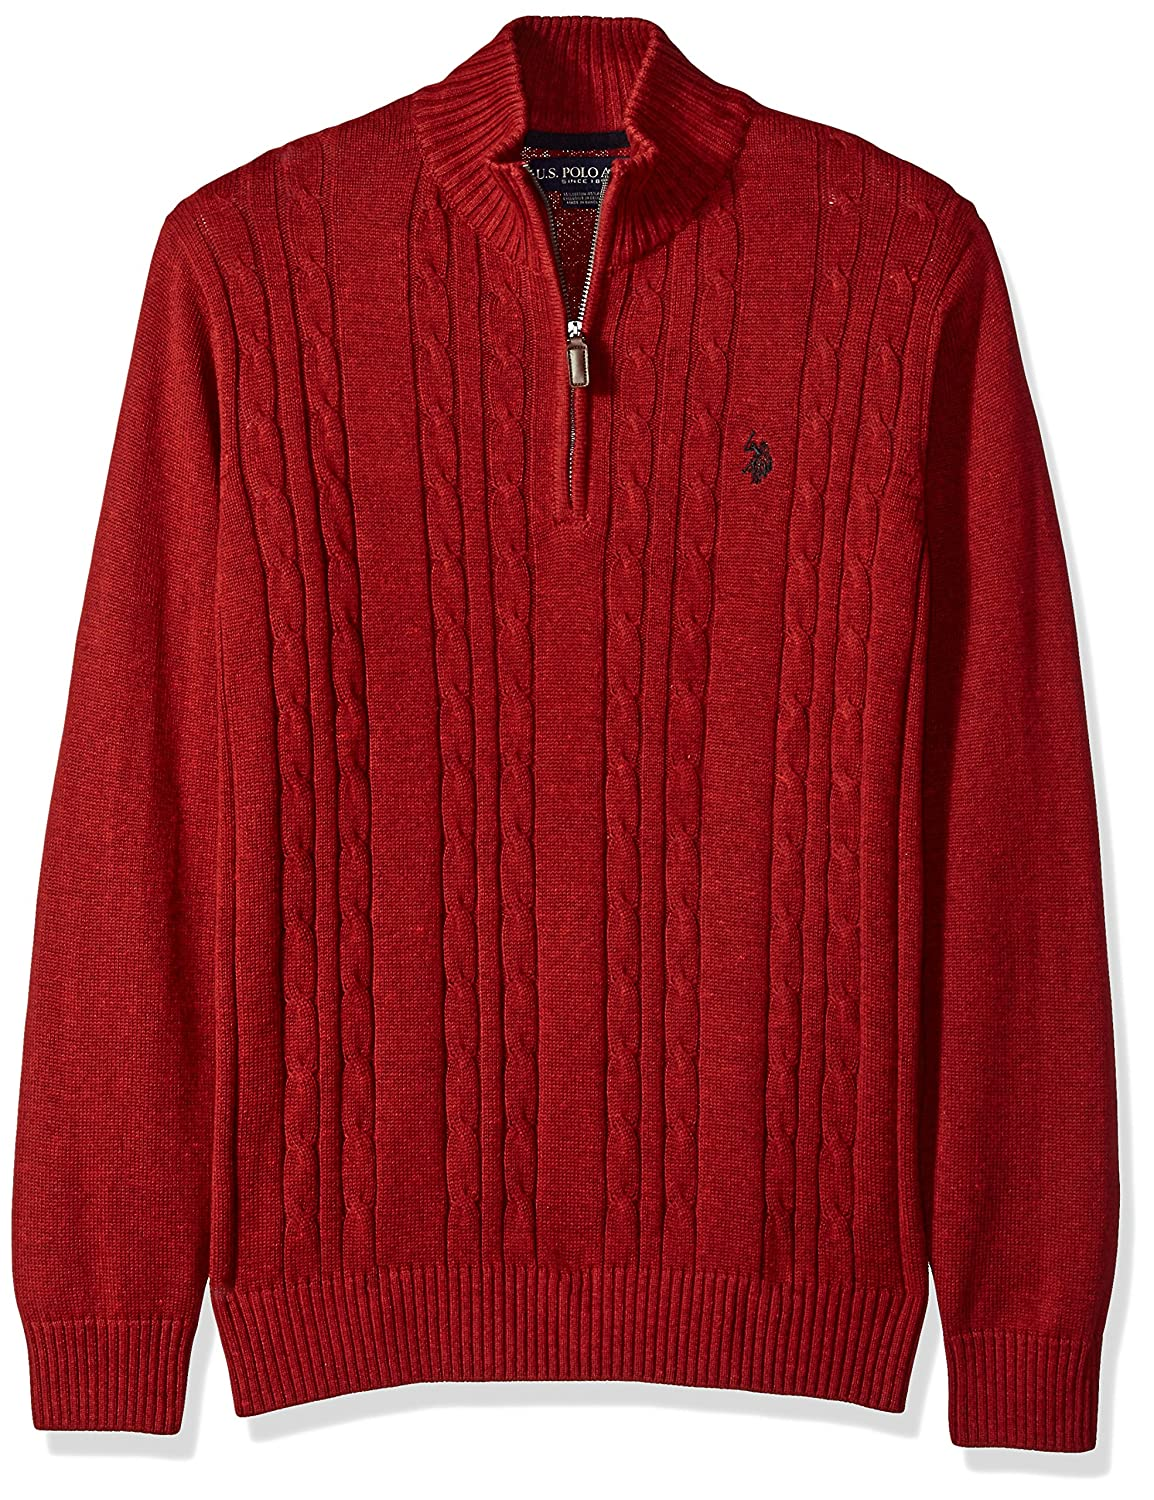 U.S. Polo Assn. Mens Standard Cable Knit 1/4 Zip Sweater ACUF7S5789